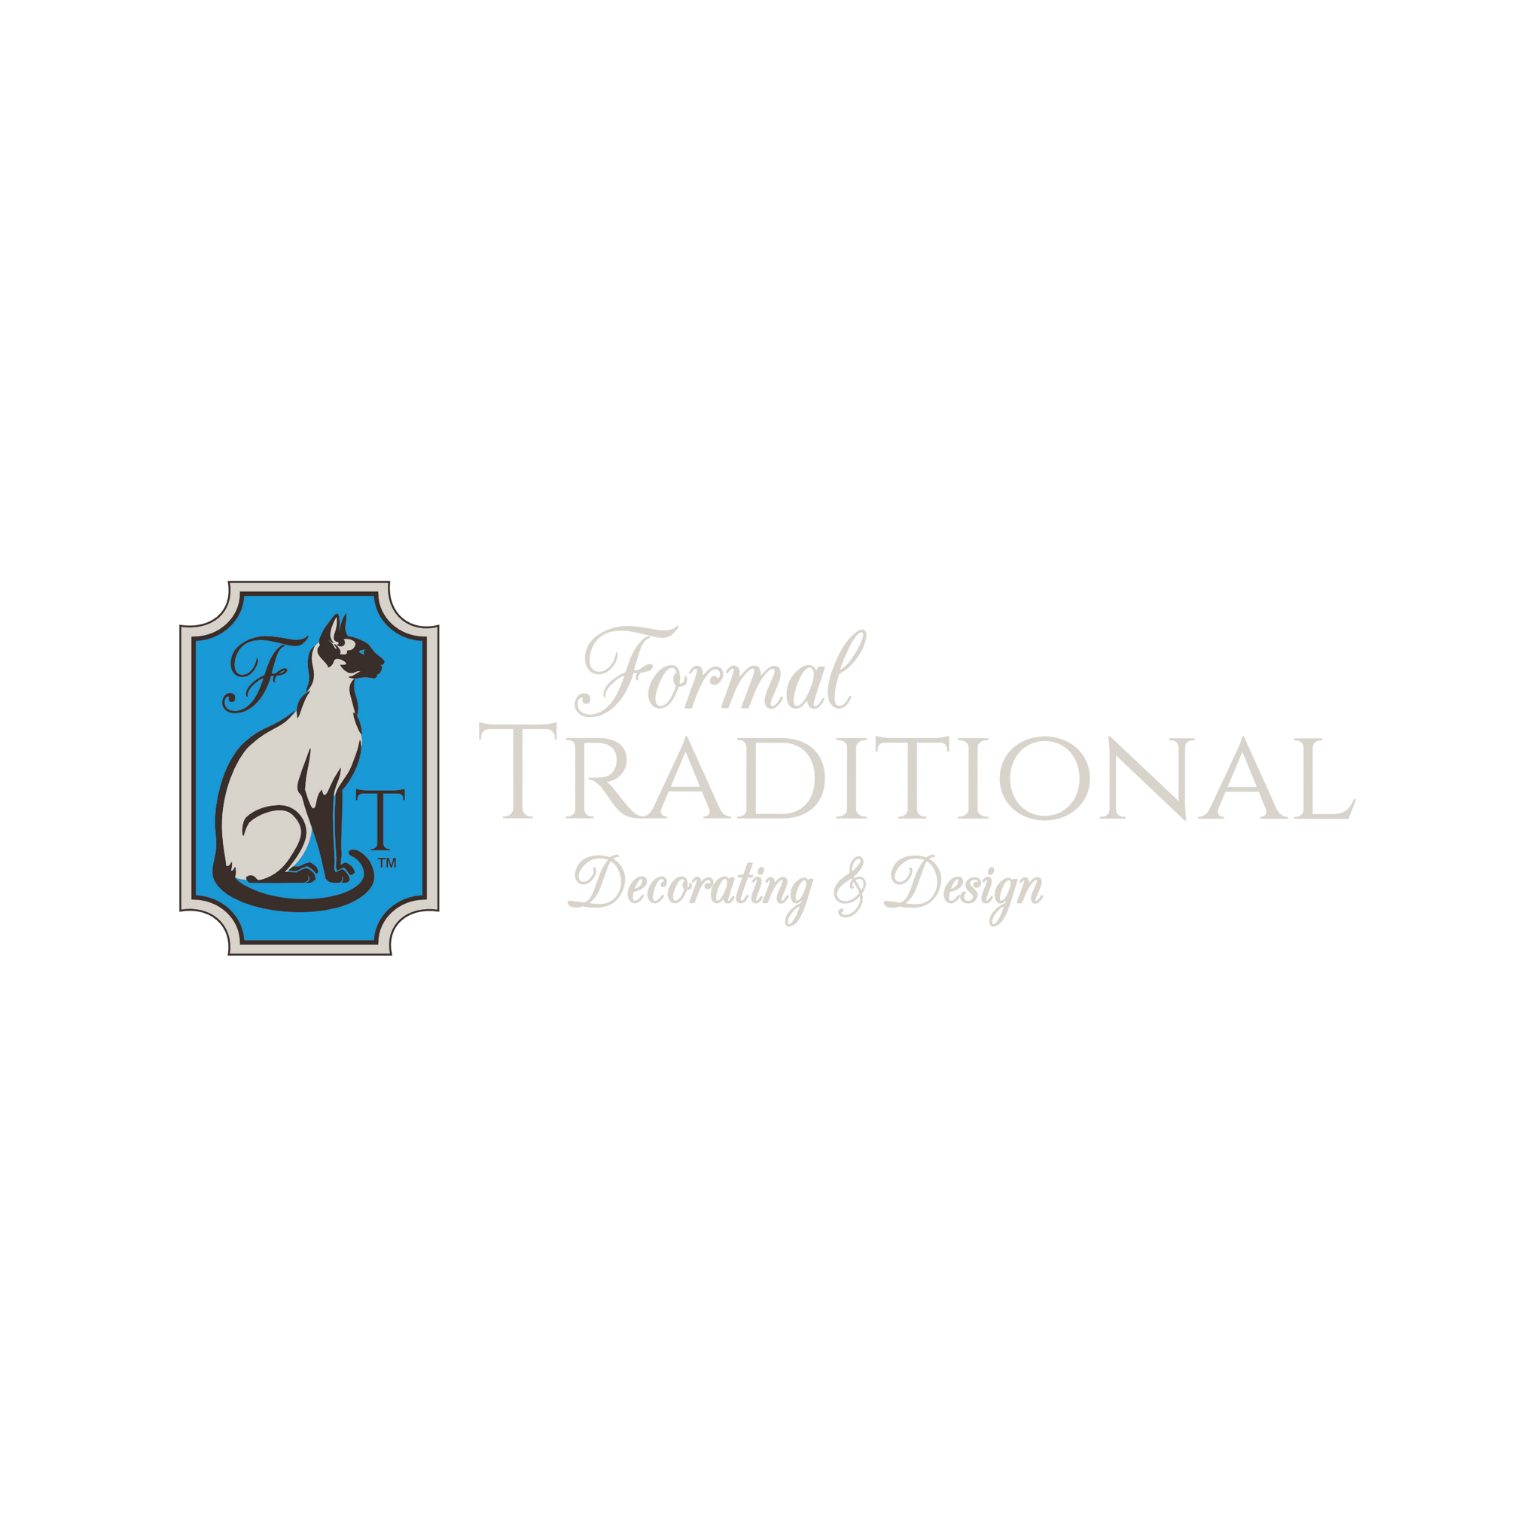 Formal Traditional